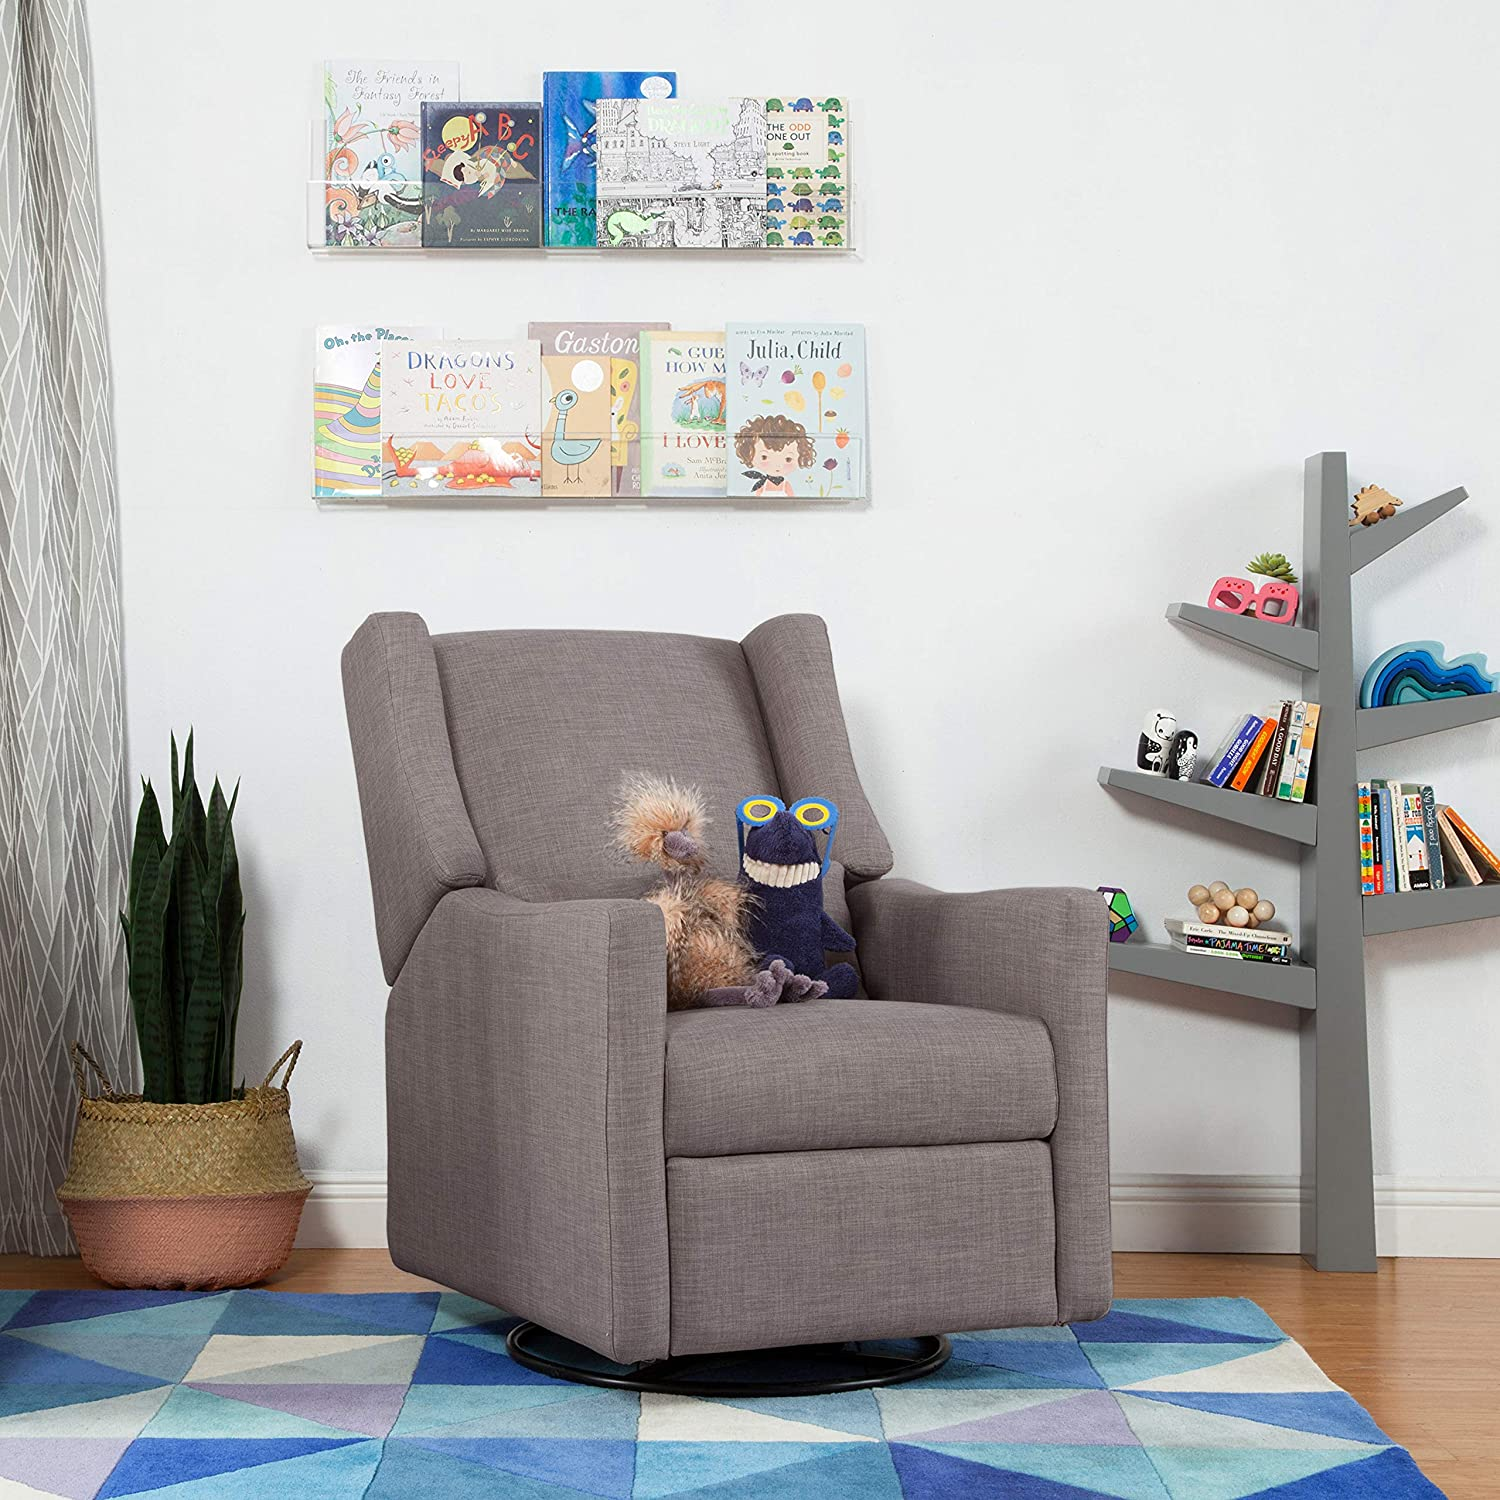 Babyletto Kiwi Electronic Power Recliner and Swivel Glider